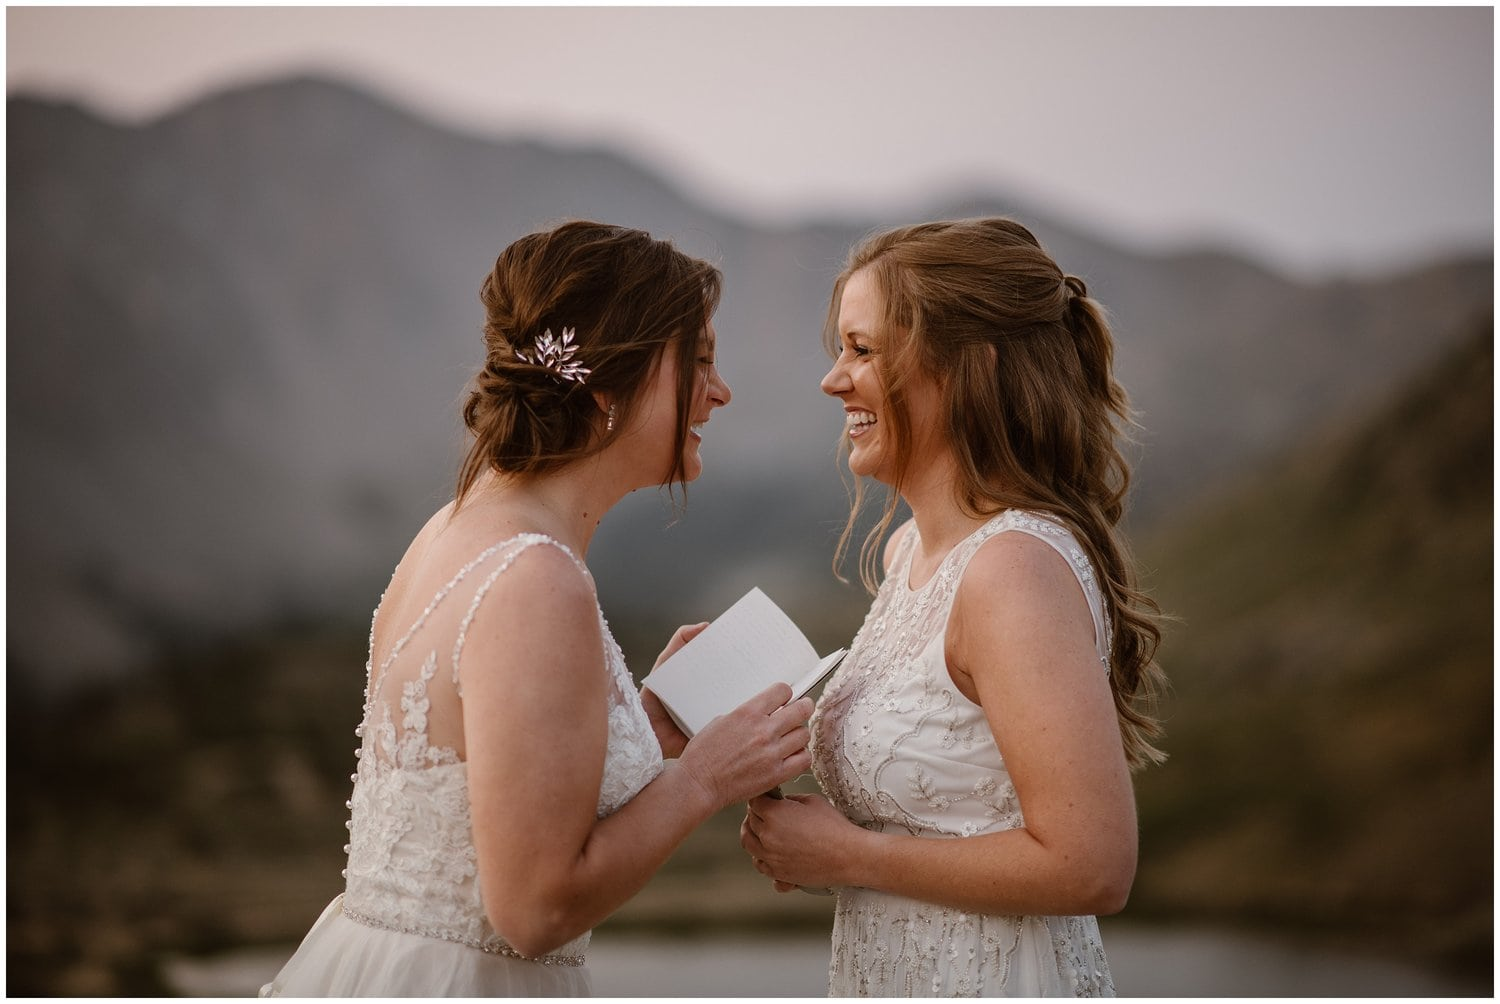 Two brides laugh during their elopement ceremony while one bride holds a vow book.